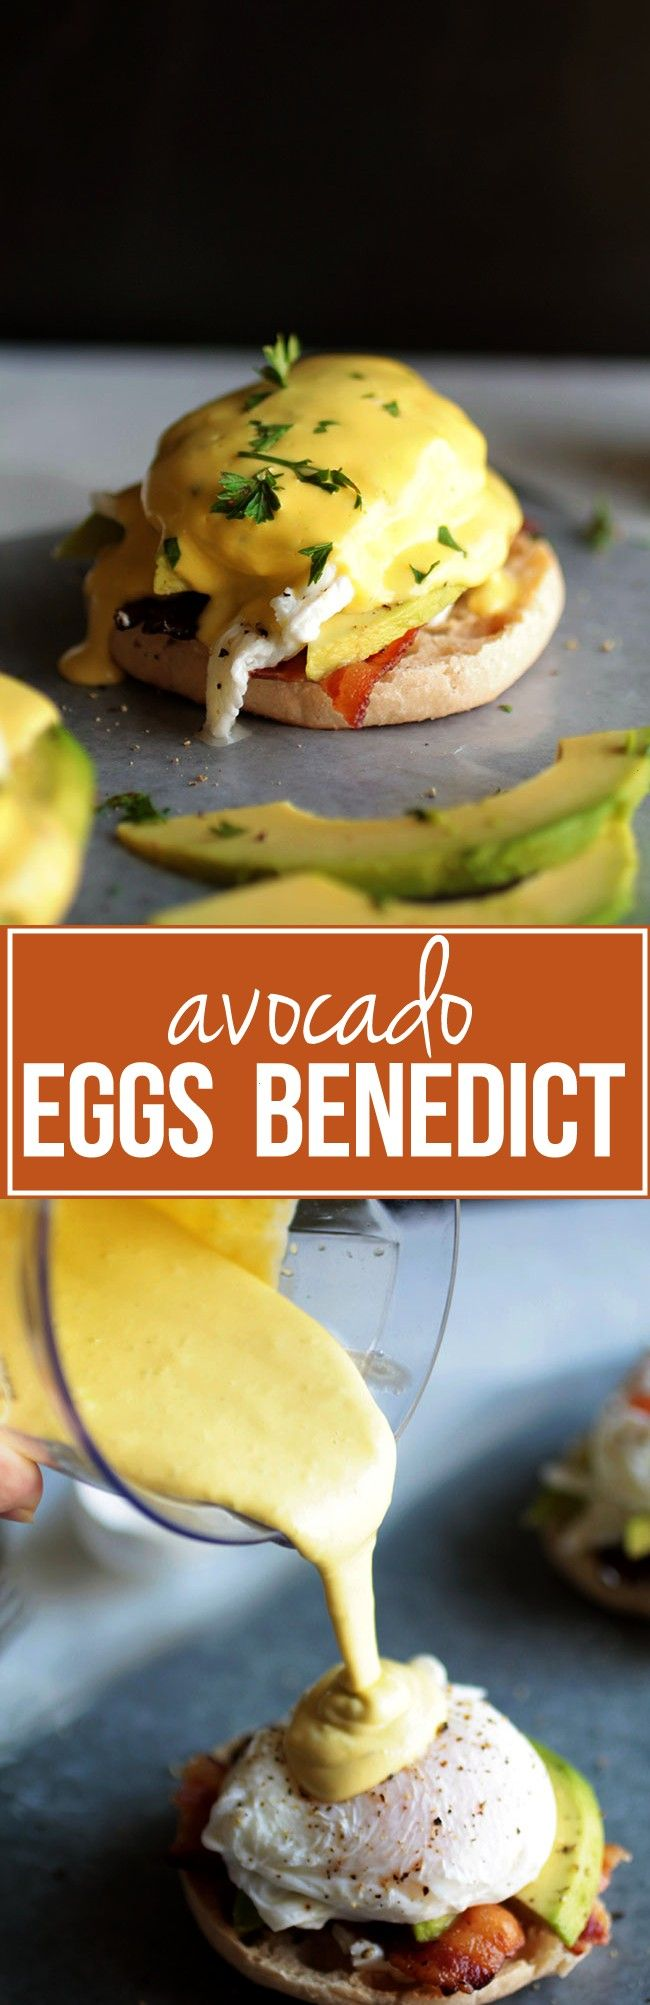 Benedict Avocado Eggs Benedict - Shake up your breakfast routine with this deceptively easy eggs be